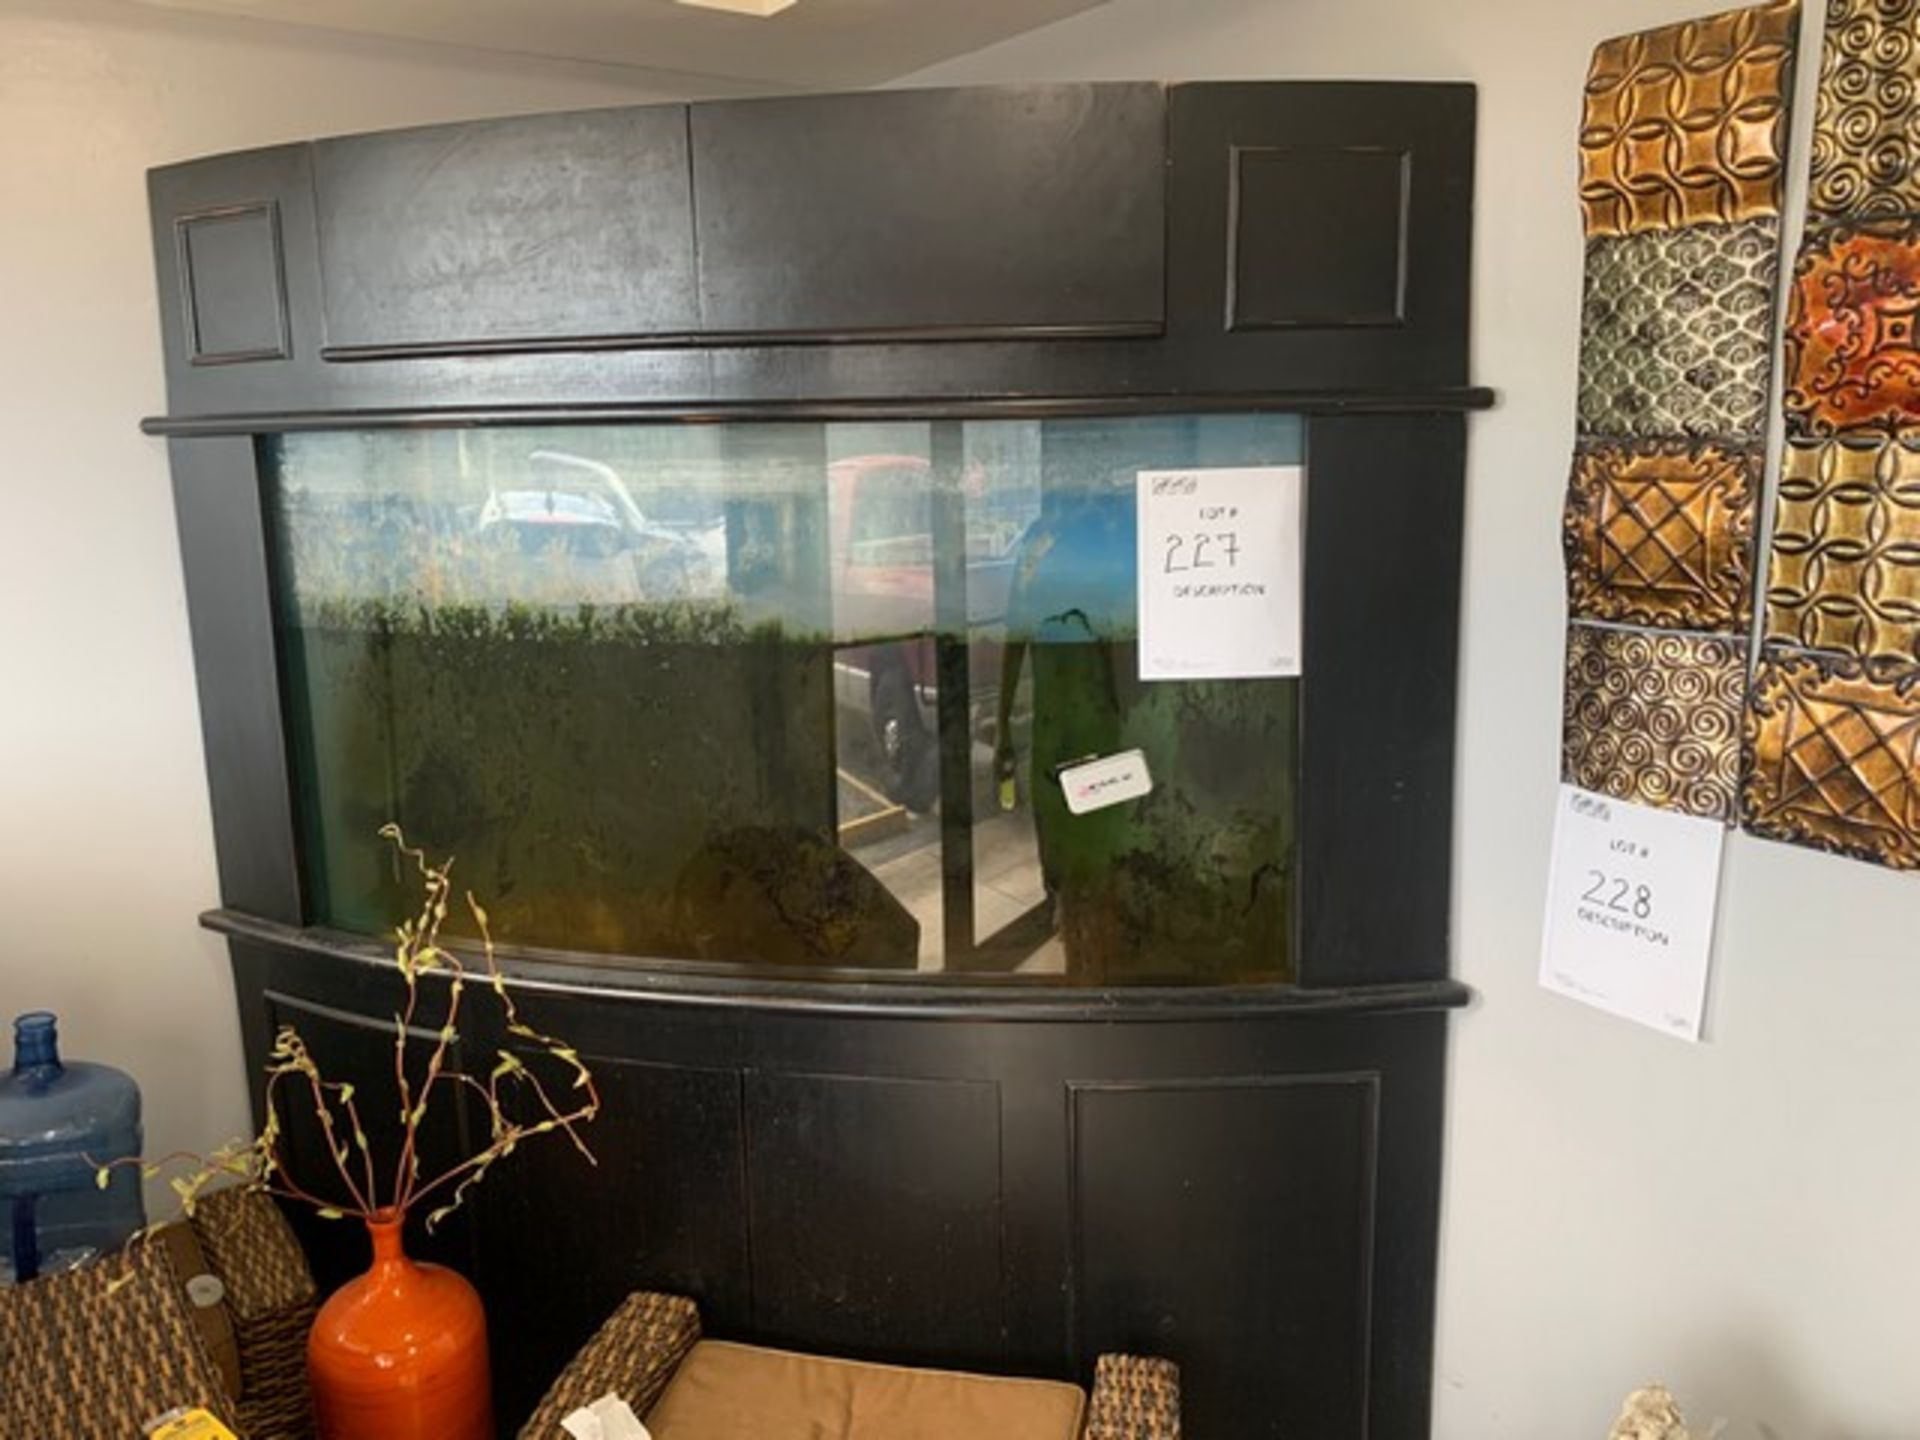 Lot 227 - FISH TANK - 350 GALLON